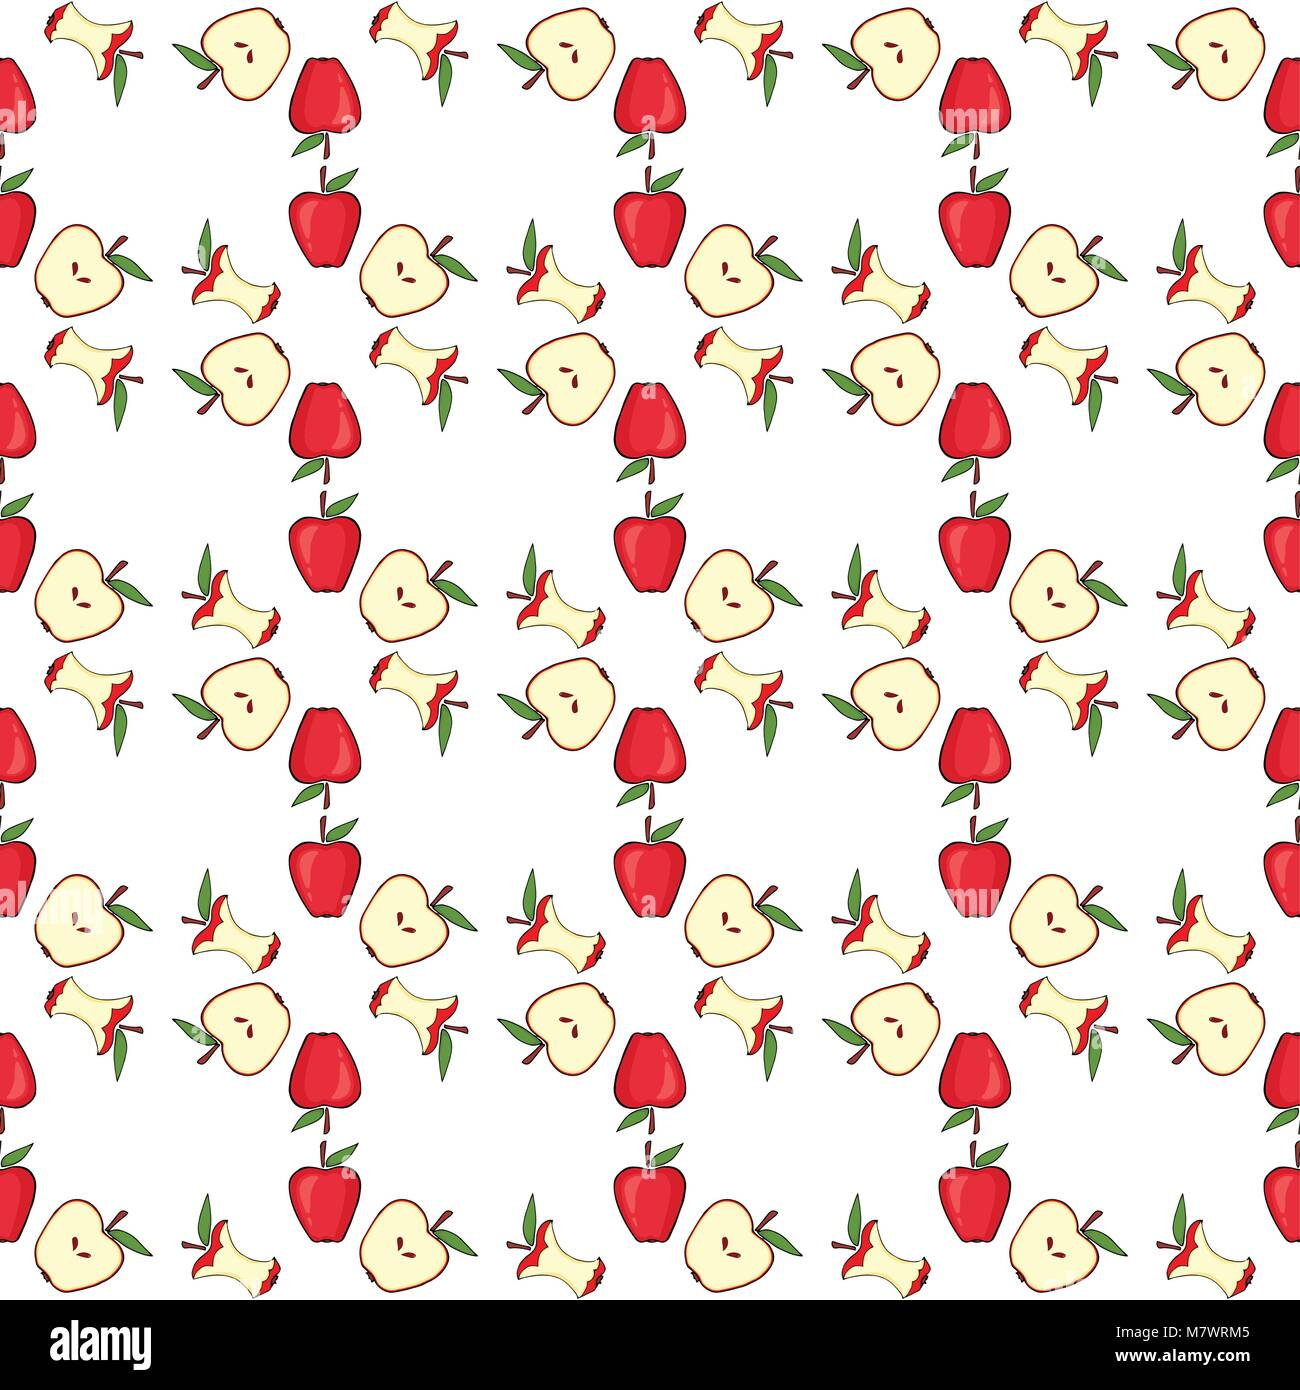 Red apple, core, half fruit. Seamless pattern background Vector illustration - Stock Vector